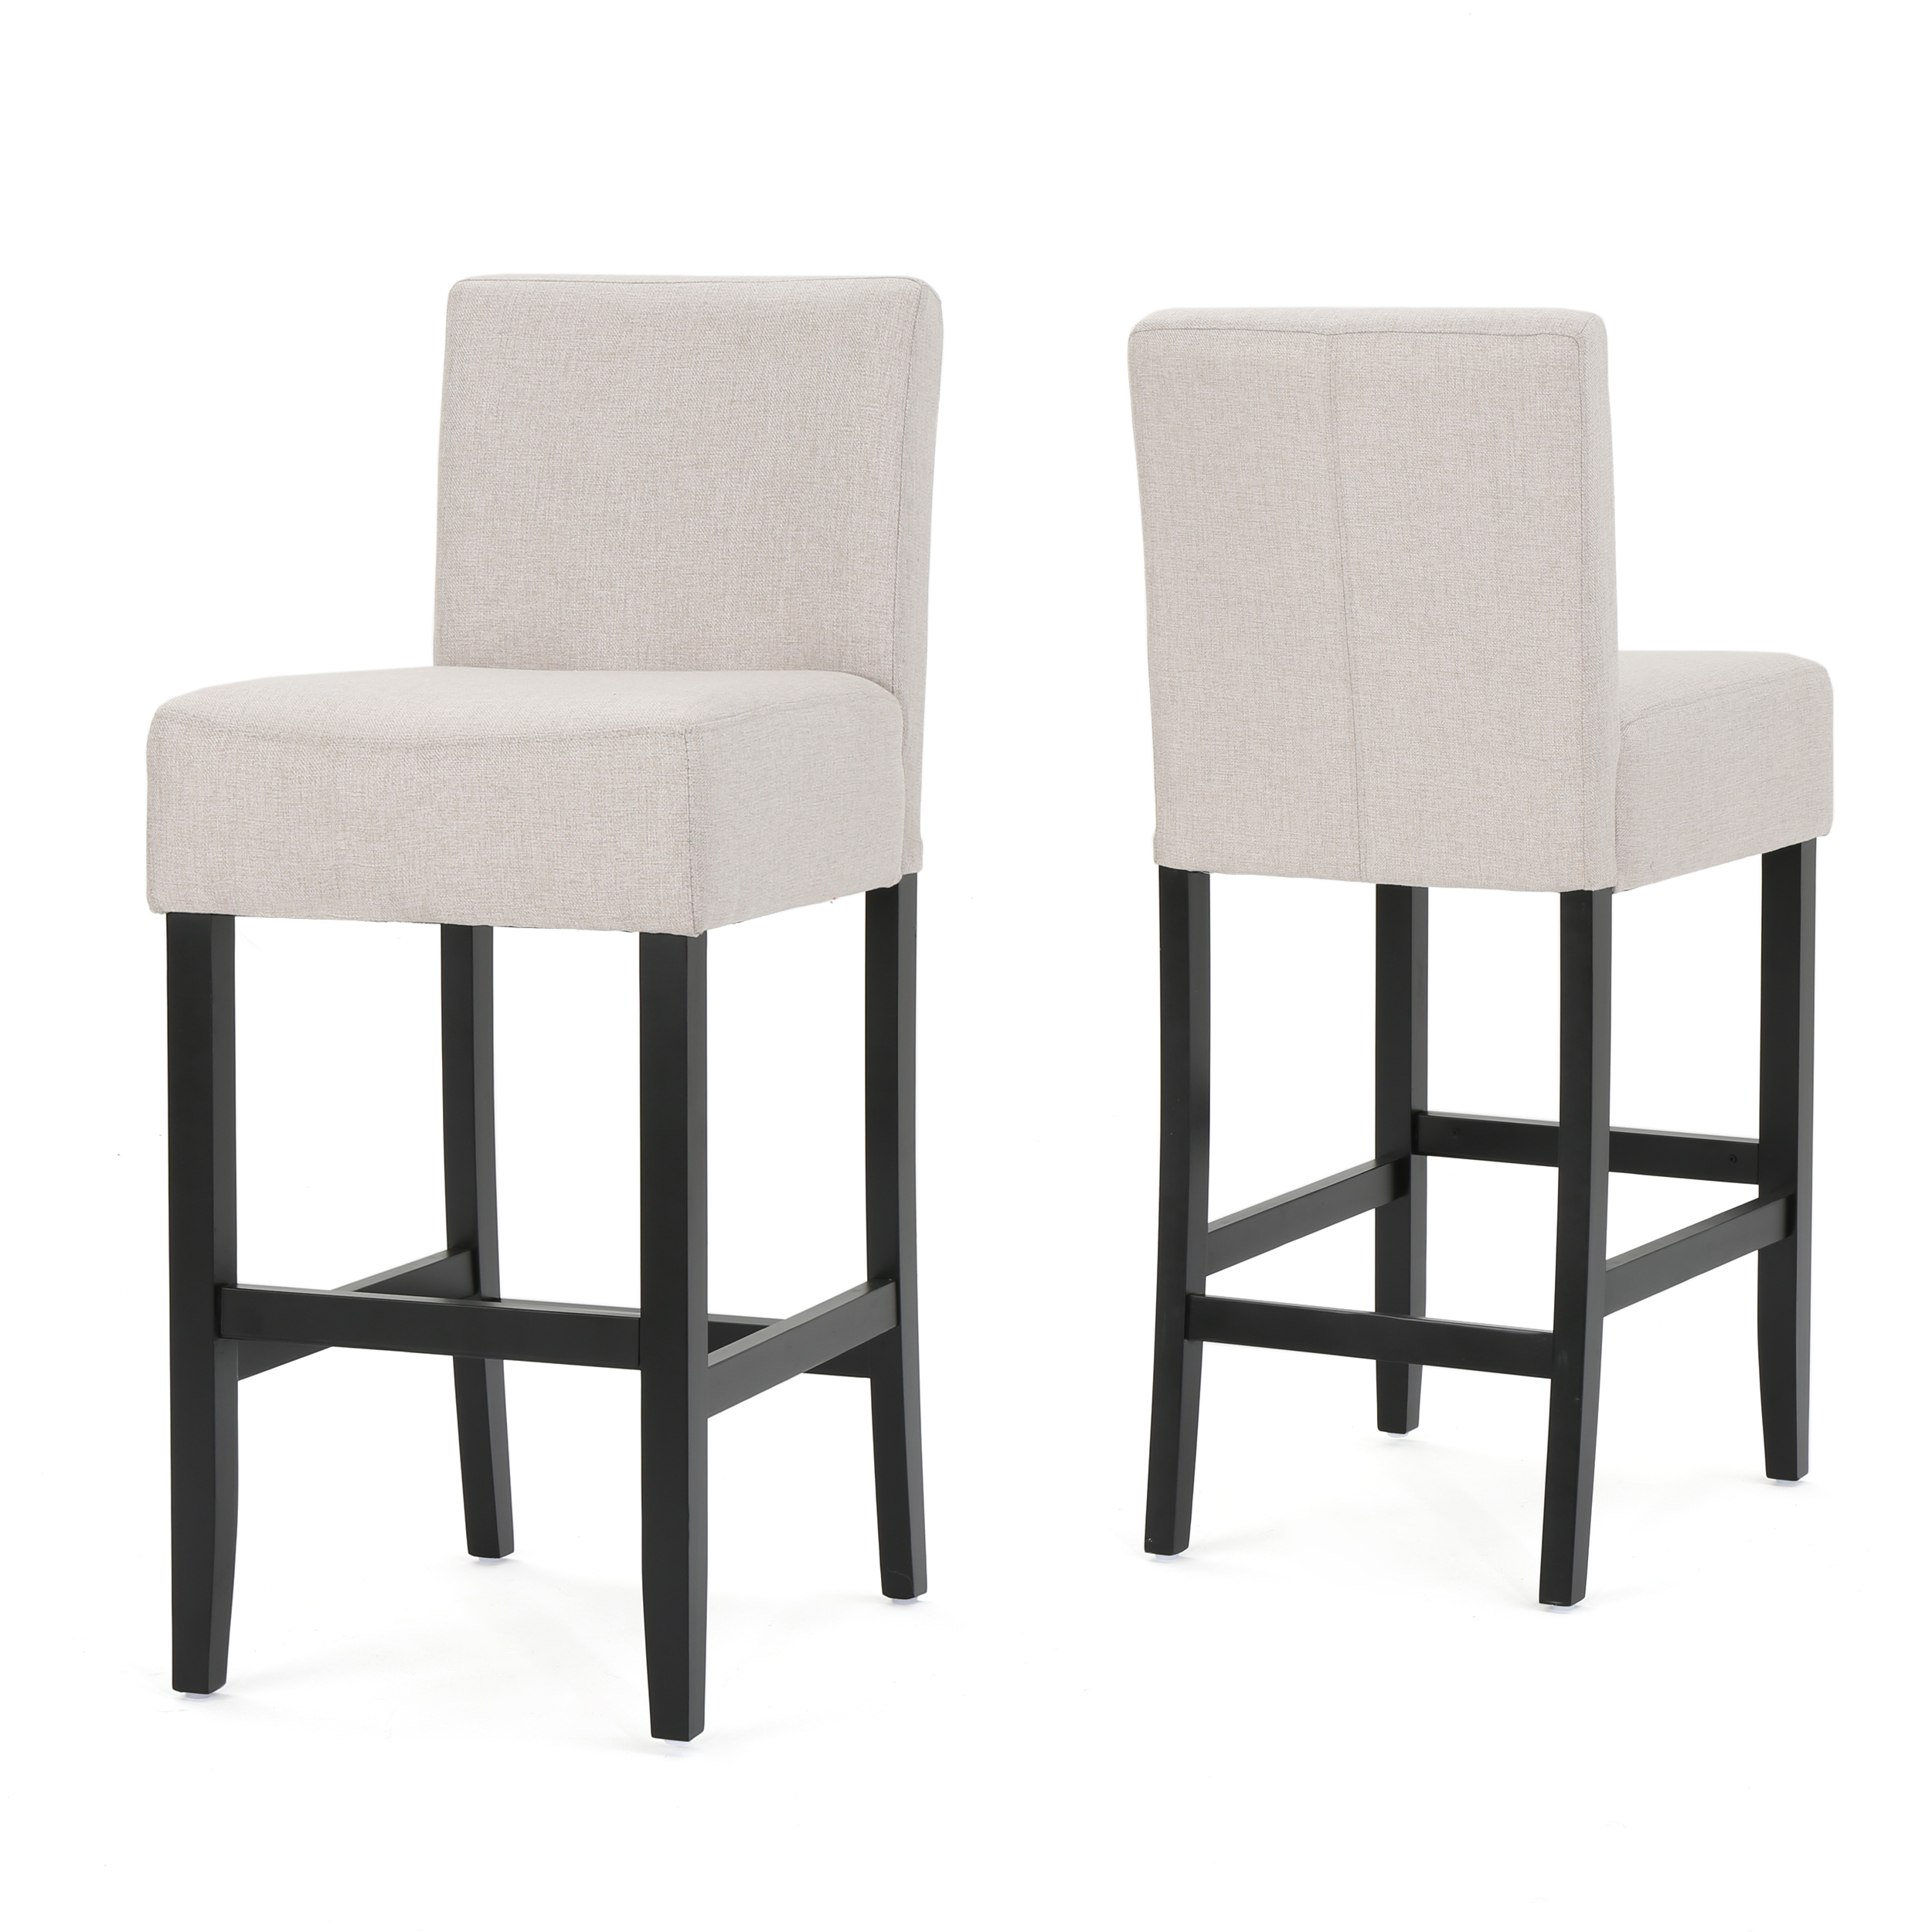 Prim Fabric Barstools, Set of 2, Wheat